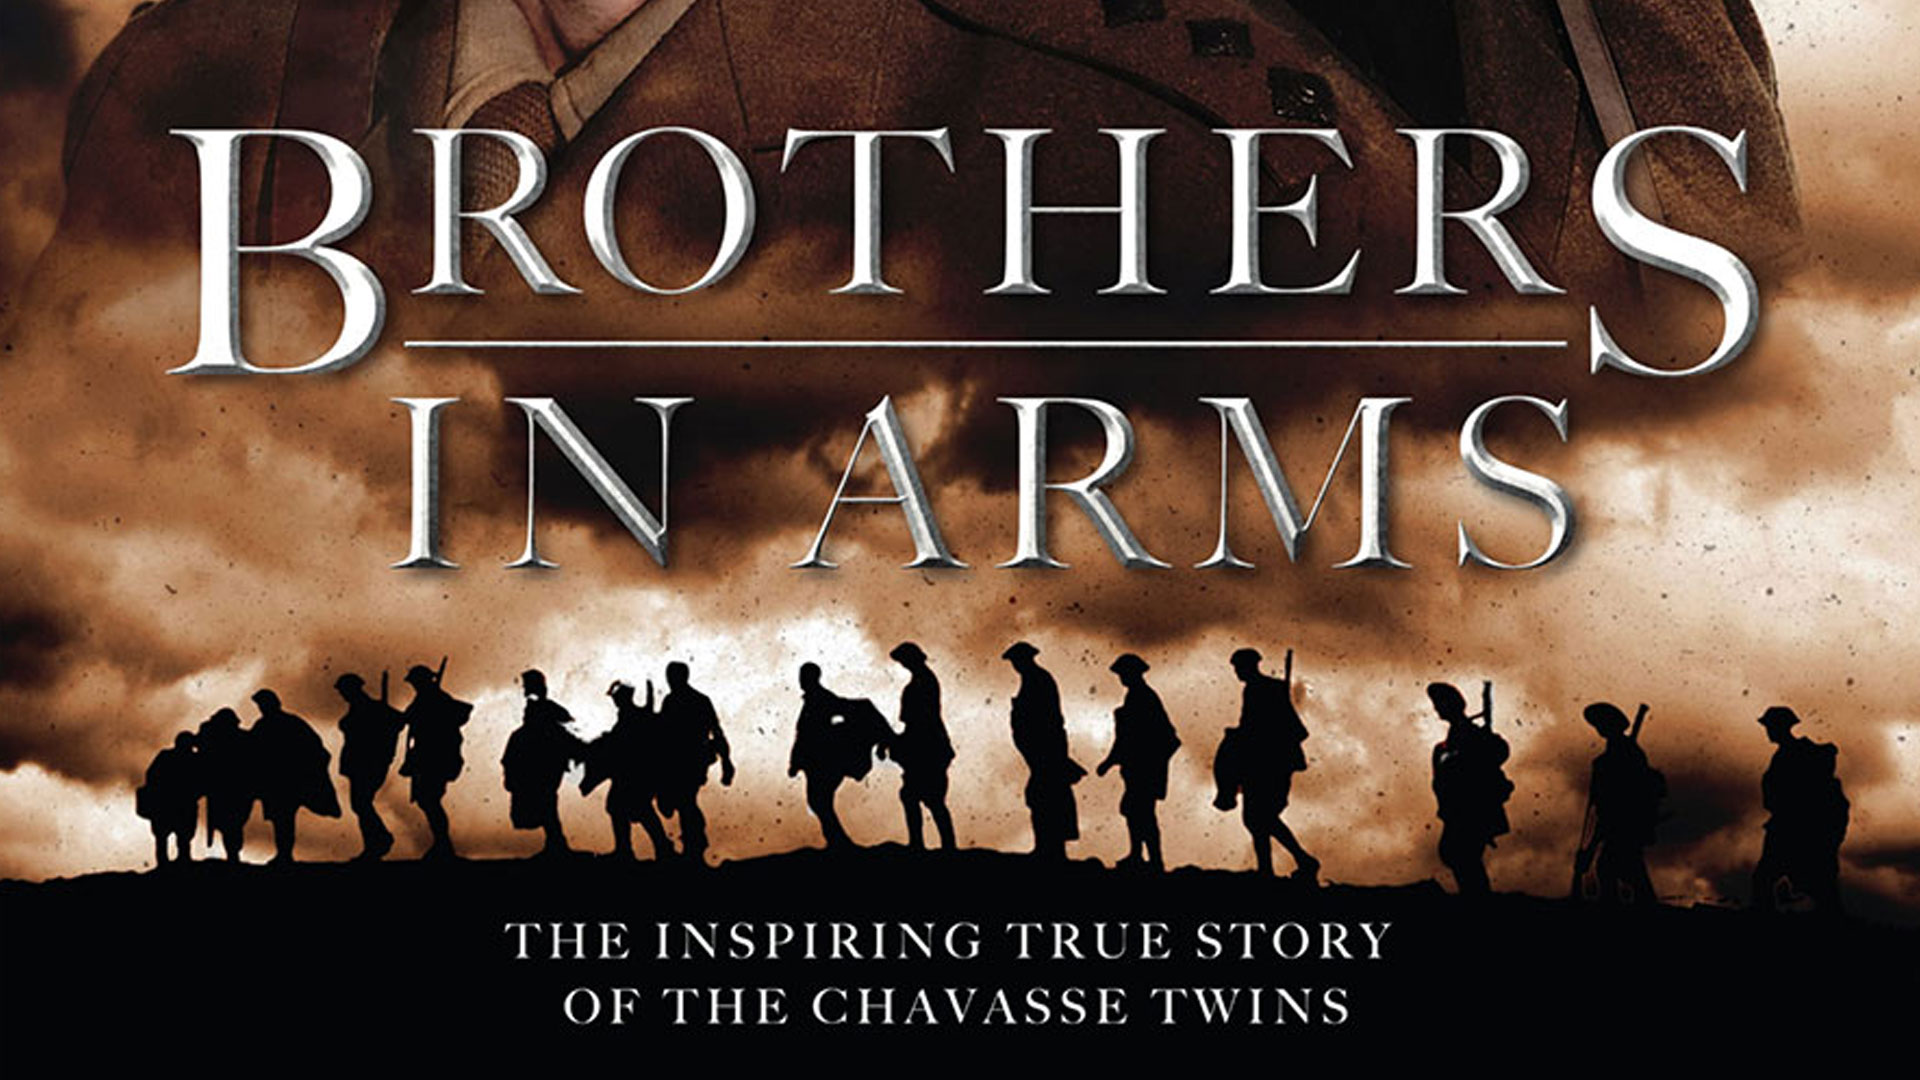 Brothers in Arms | The Inspiring True Story of the Chavasse Twins